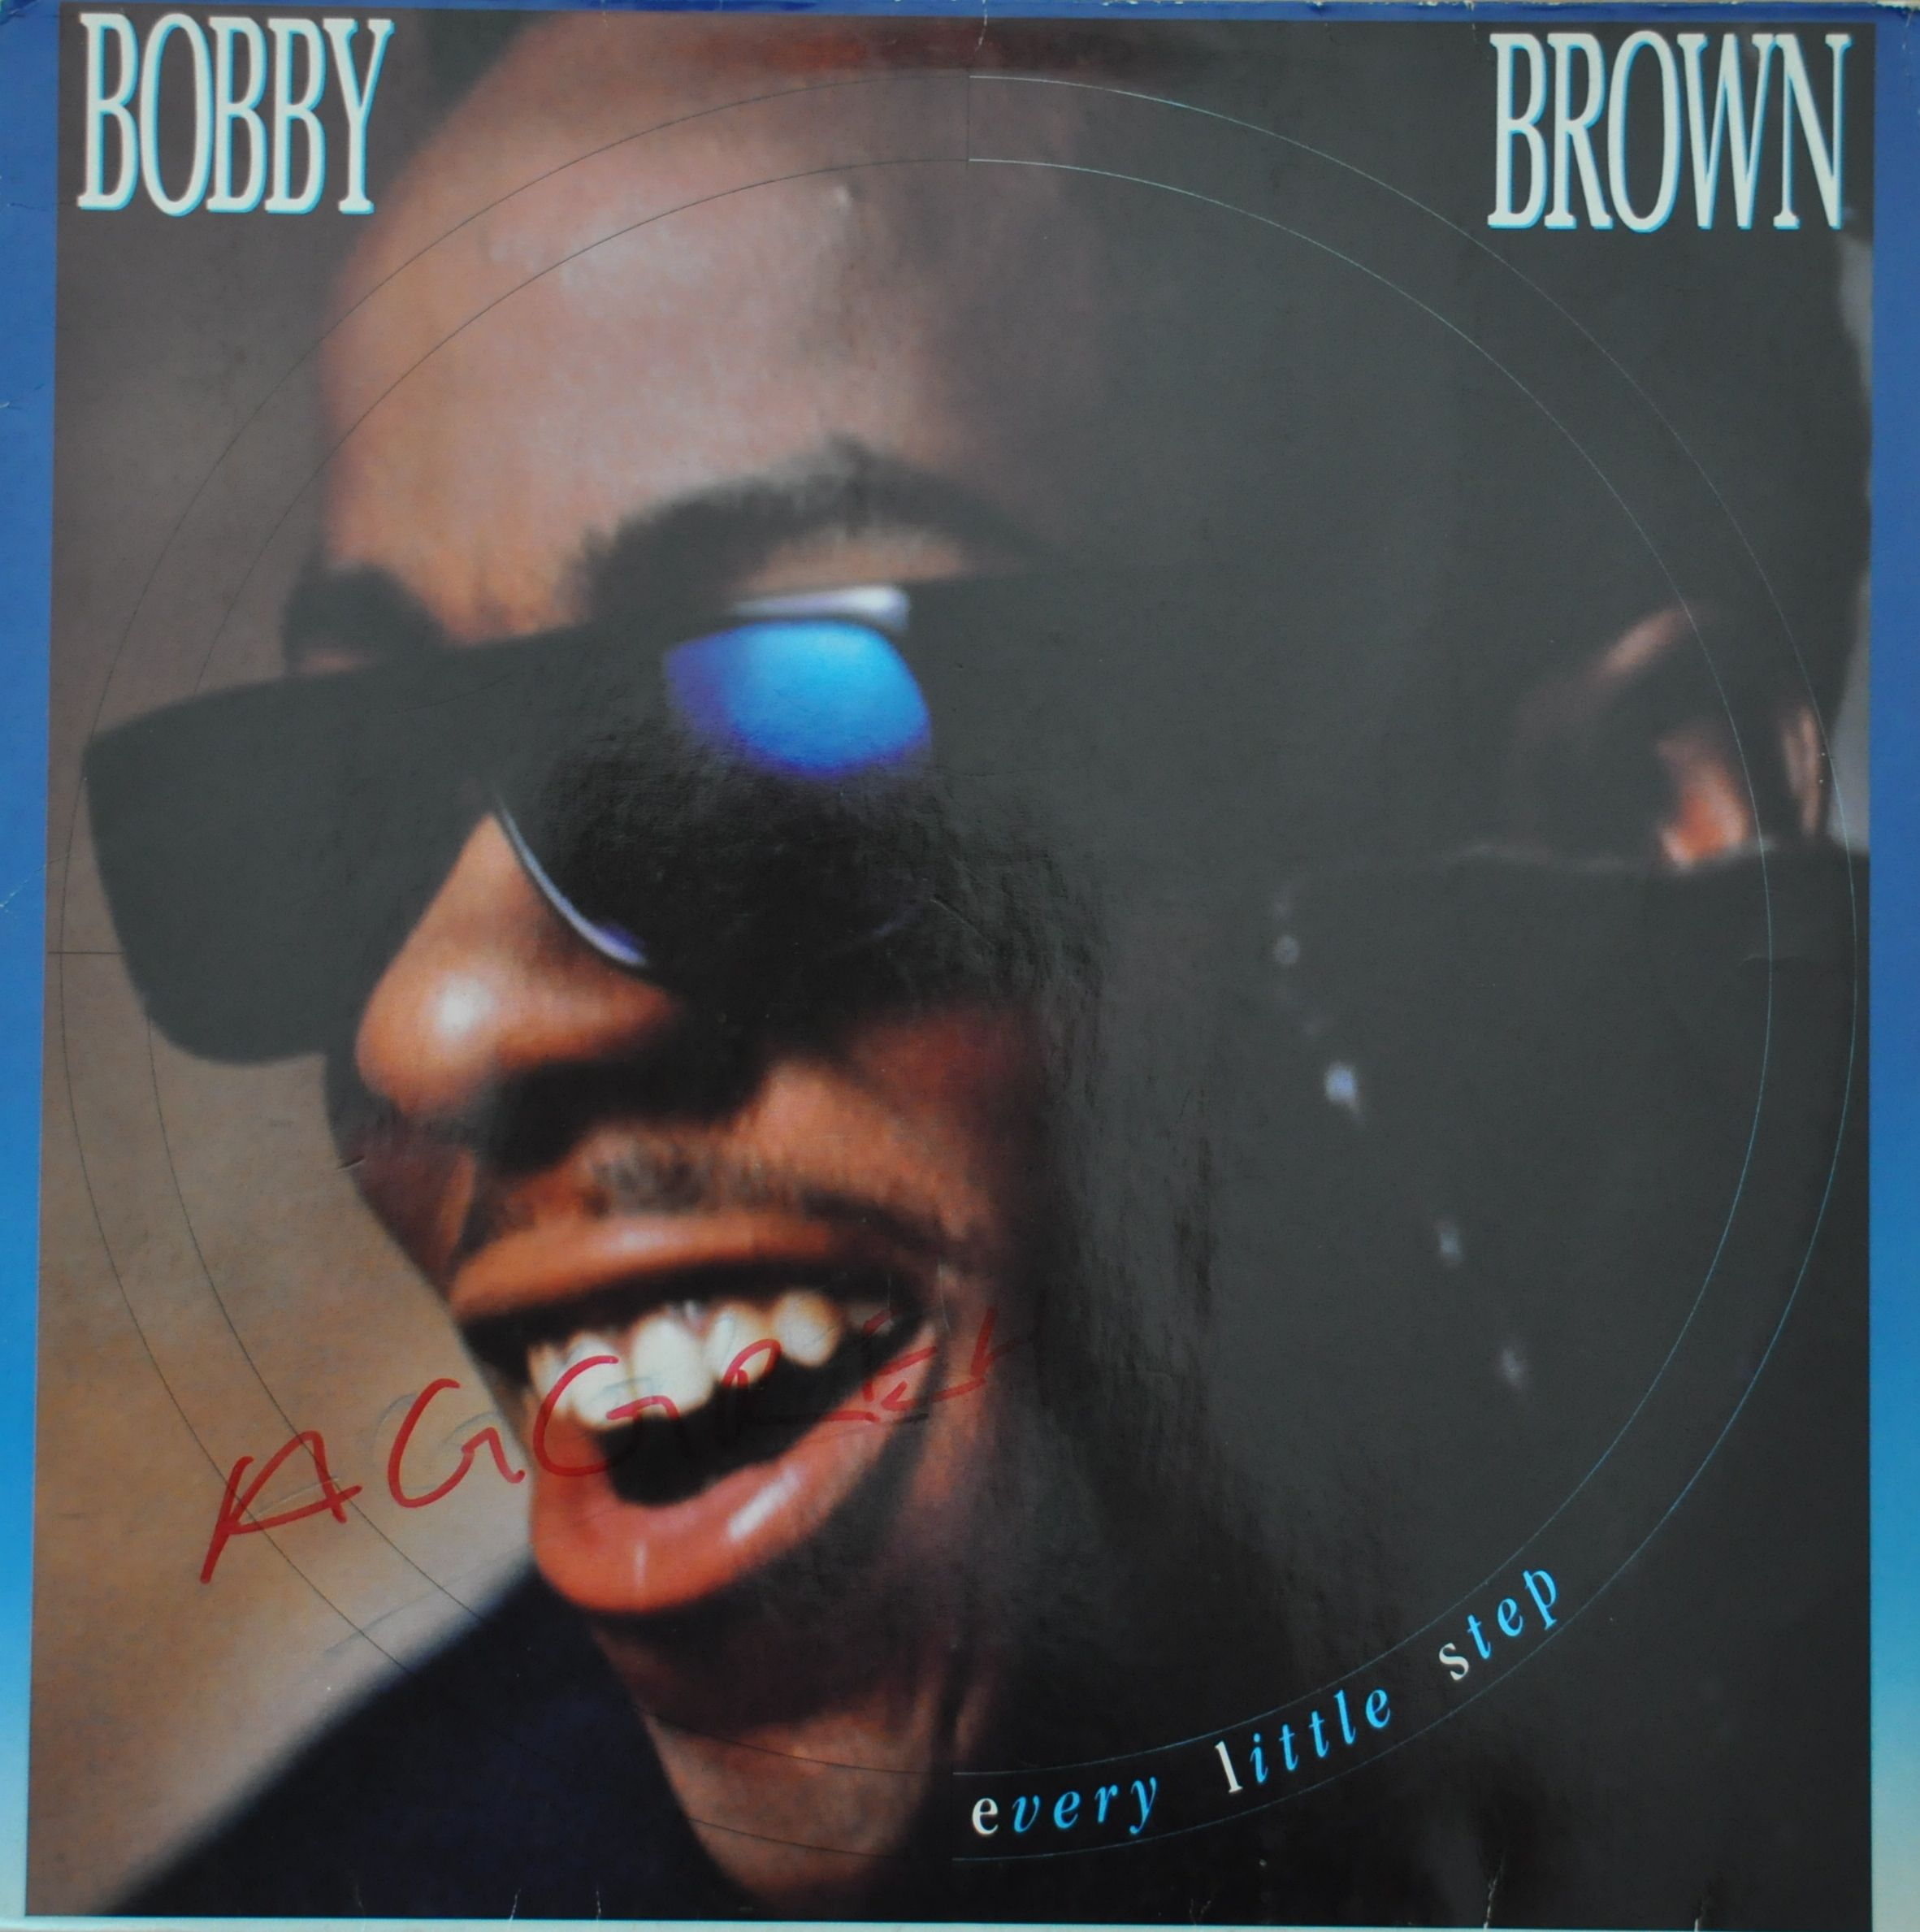 jaquettes2/Bobby-Brown_Every-little-step.jpg